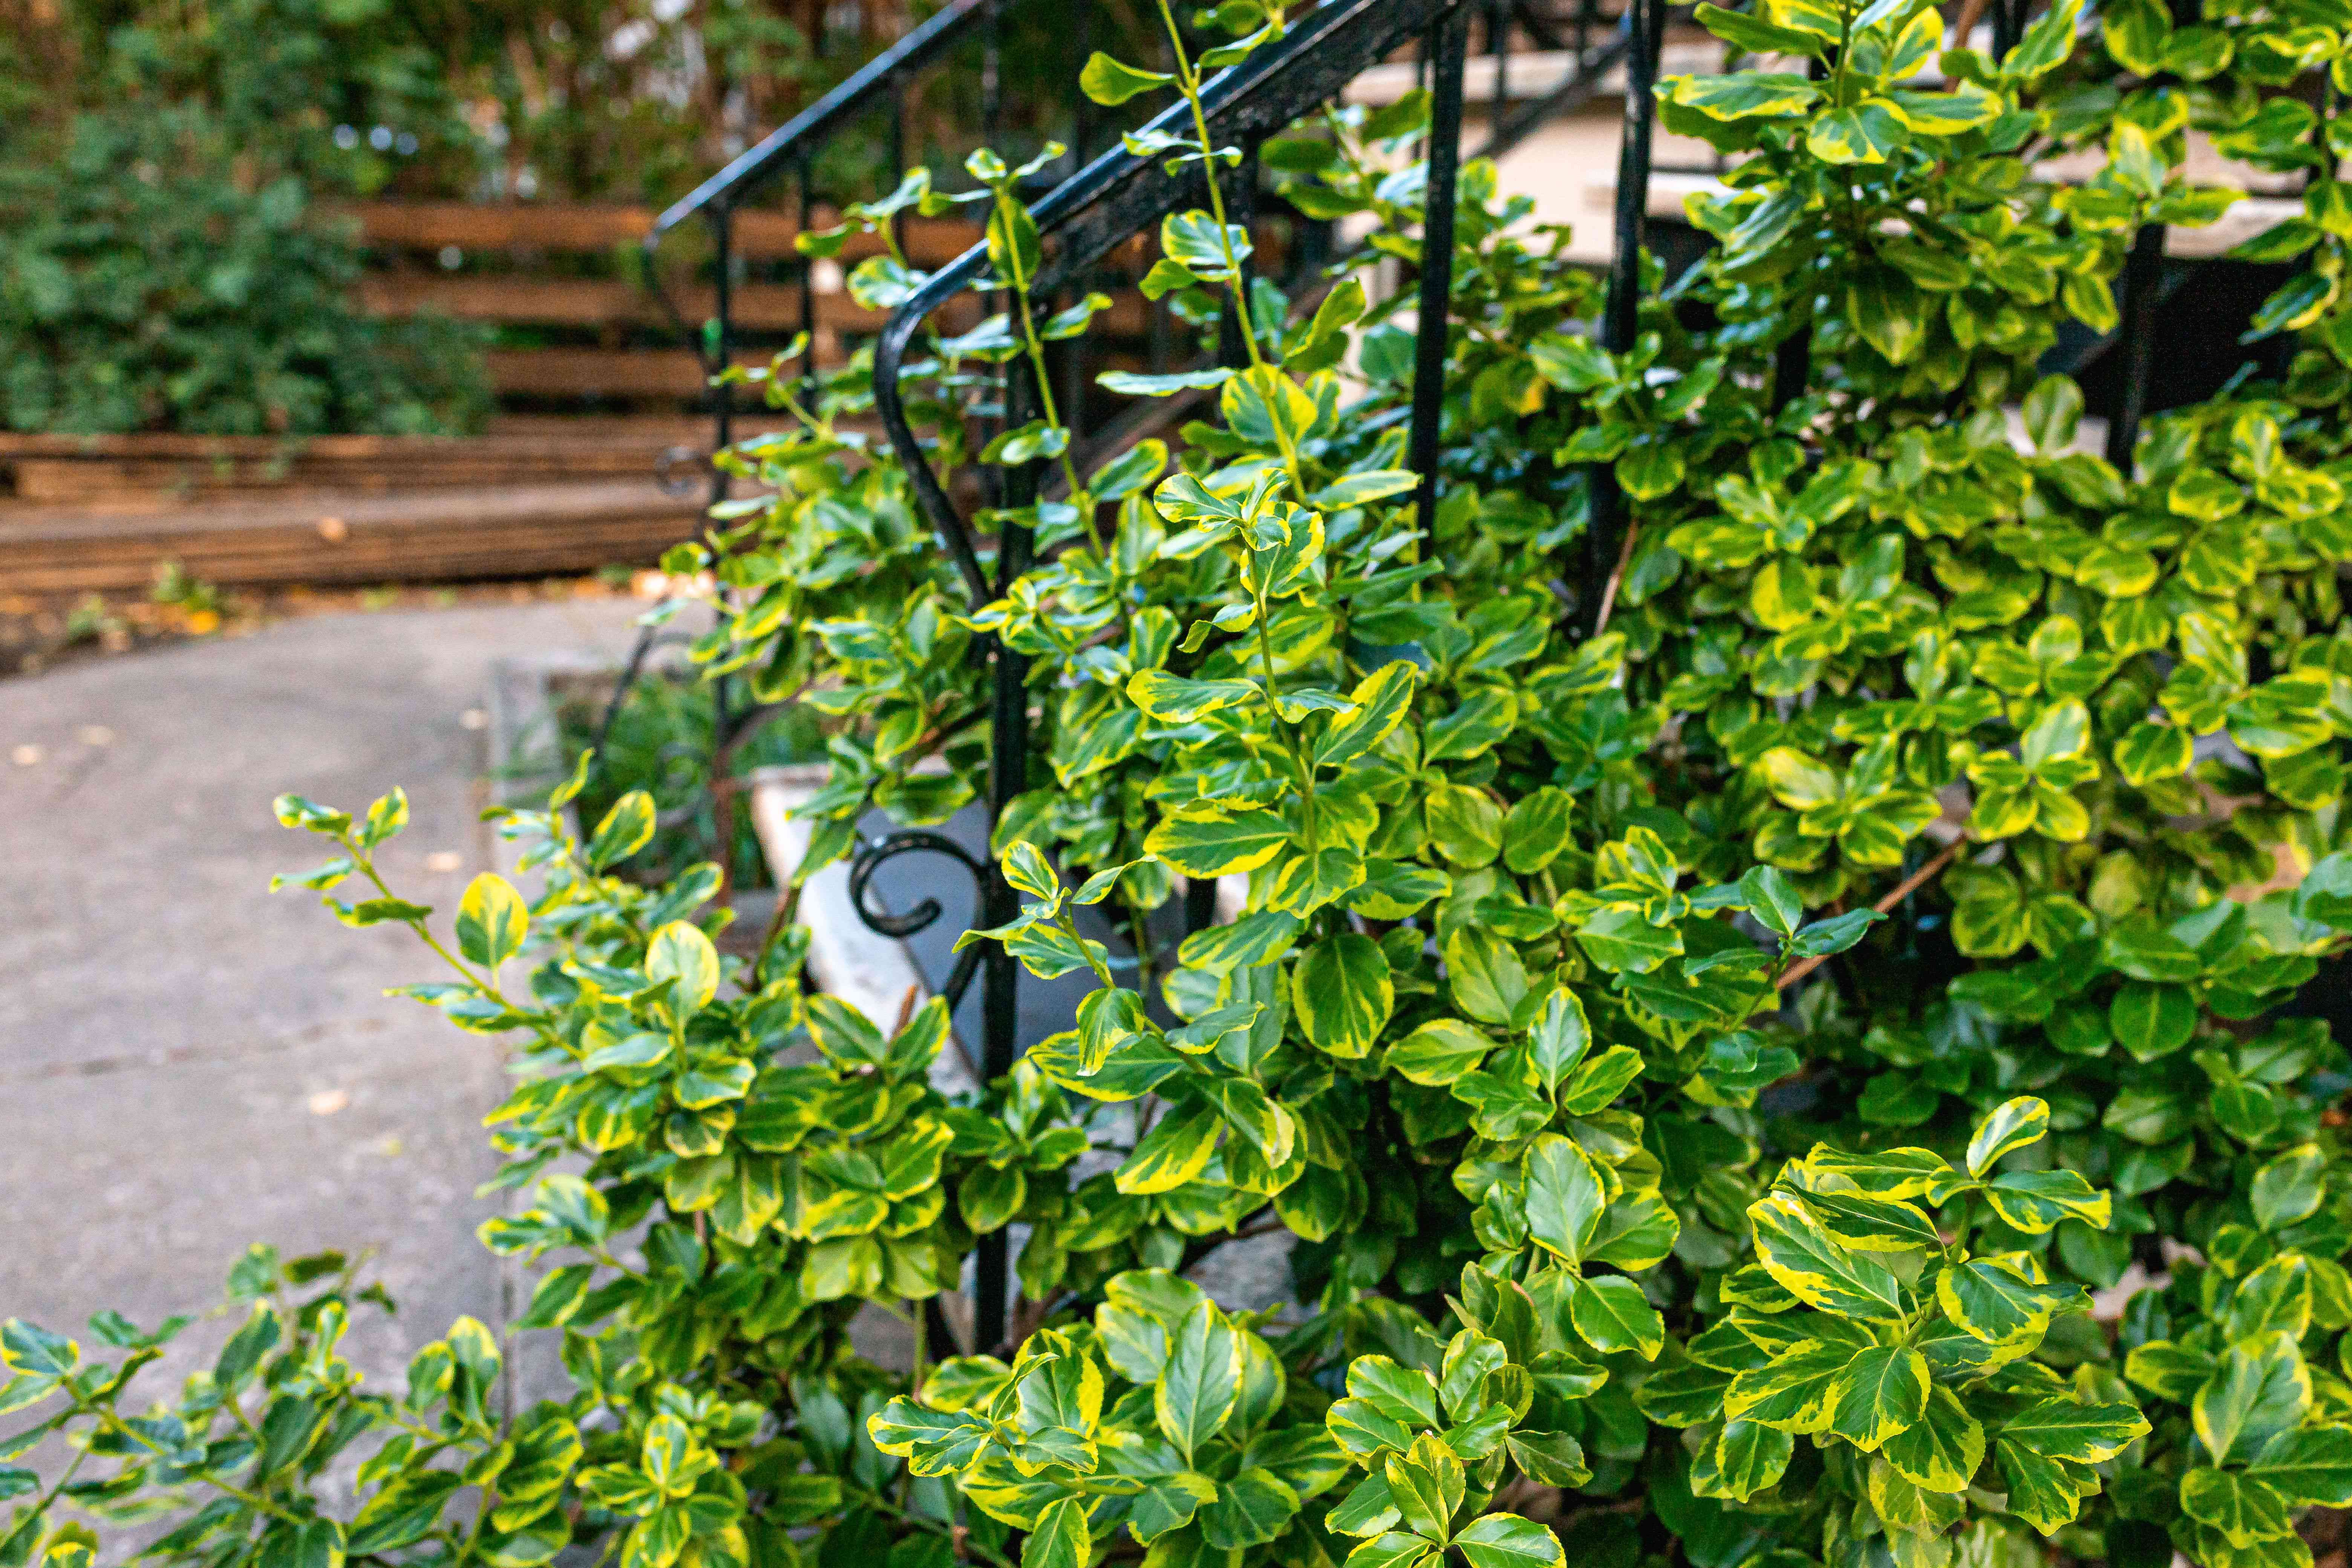 'Emerald 'n' Gold' wintercreeper shrub with yellow leaves with green-centered leaves on side of metal stair rail